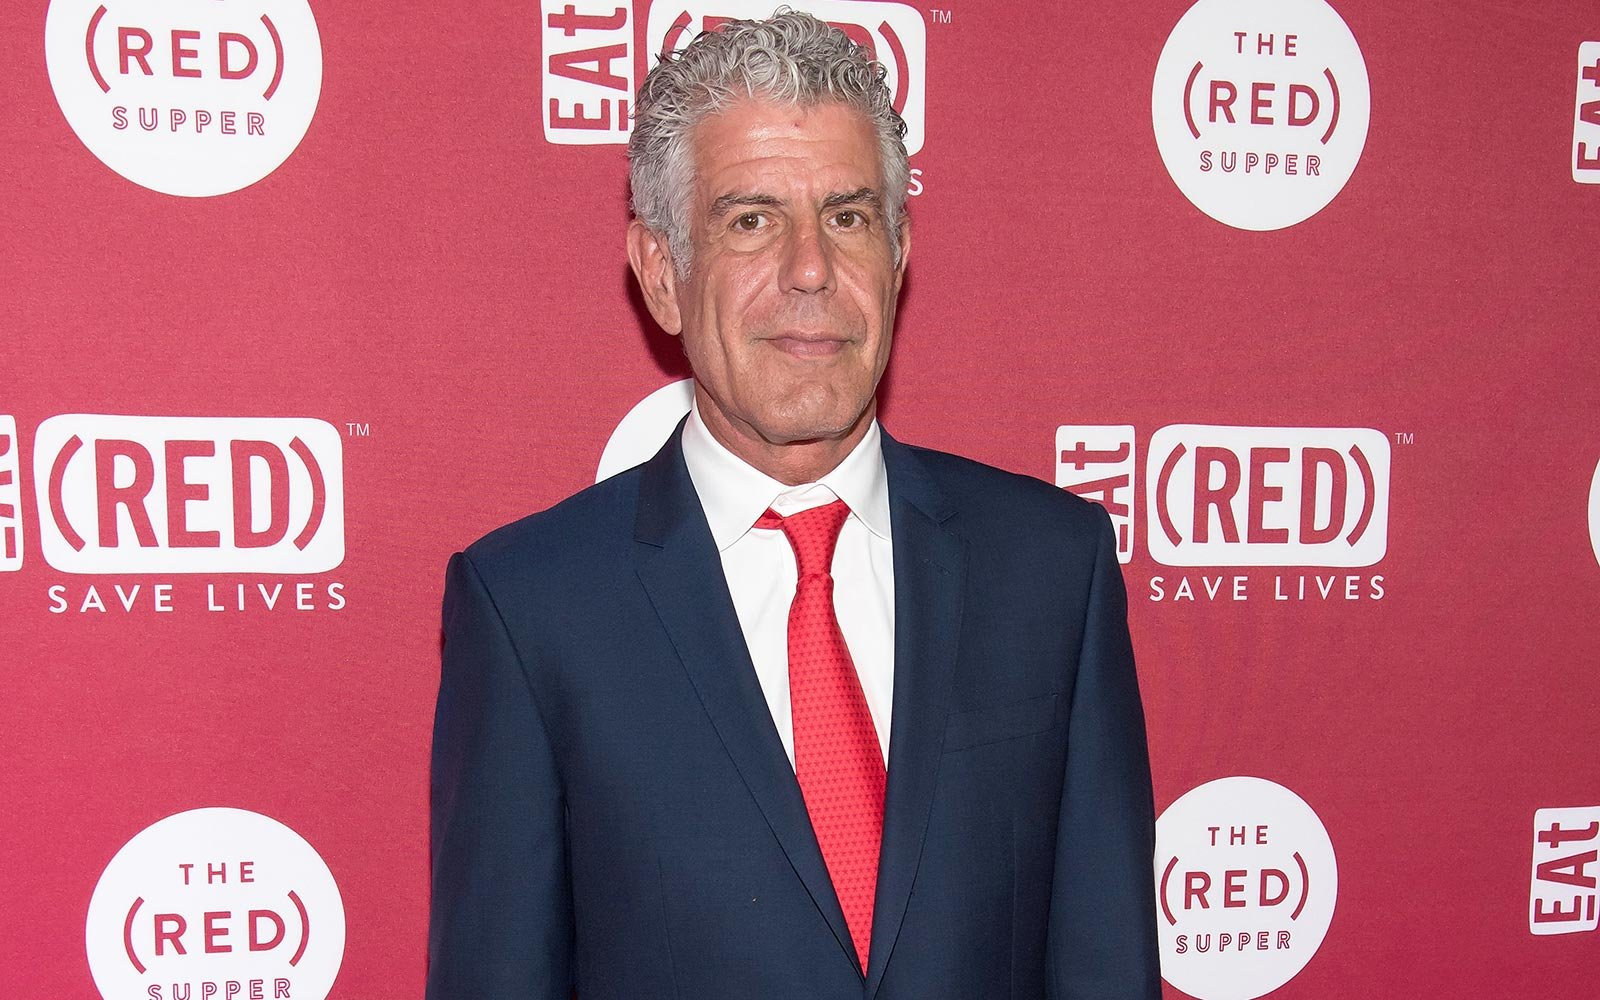 Anthony Bourdain says we're cooking steak all wrong